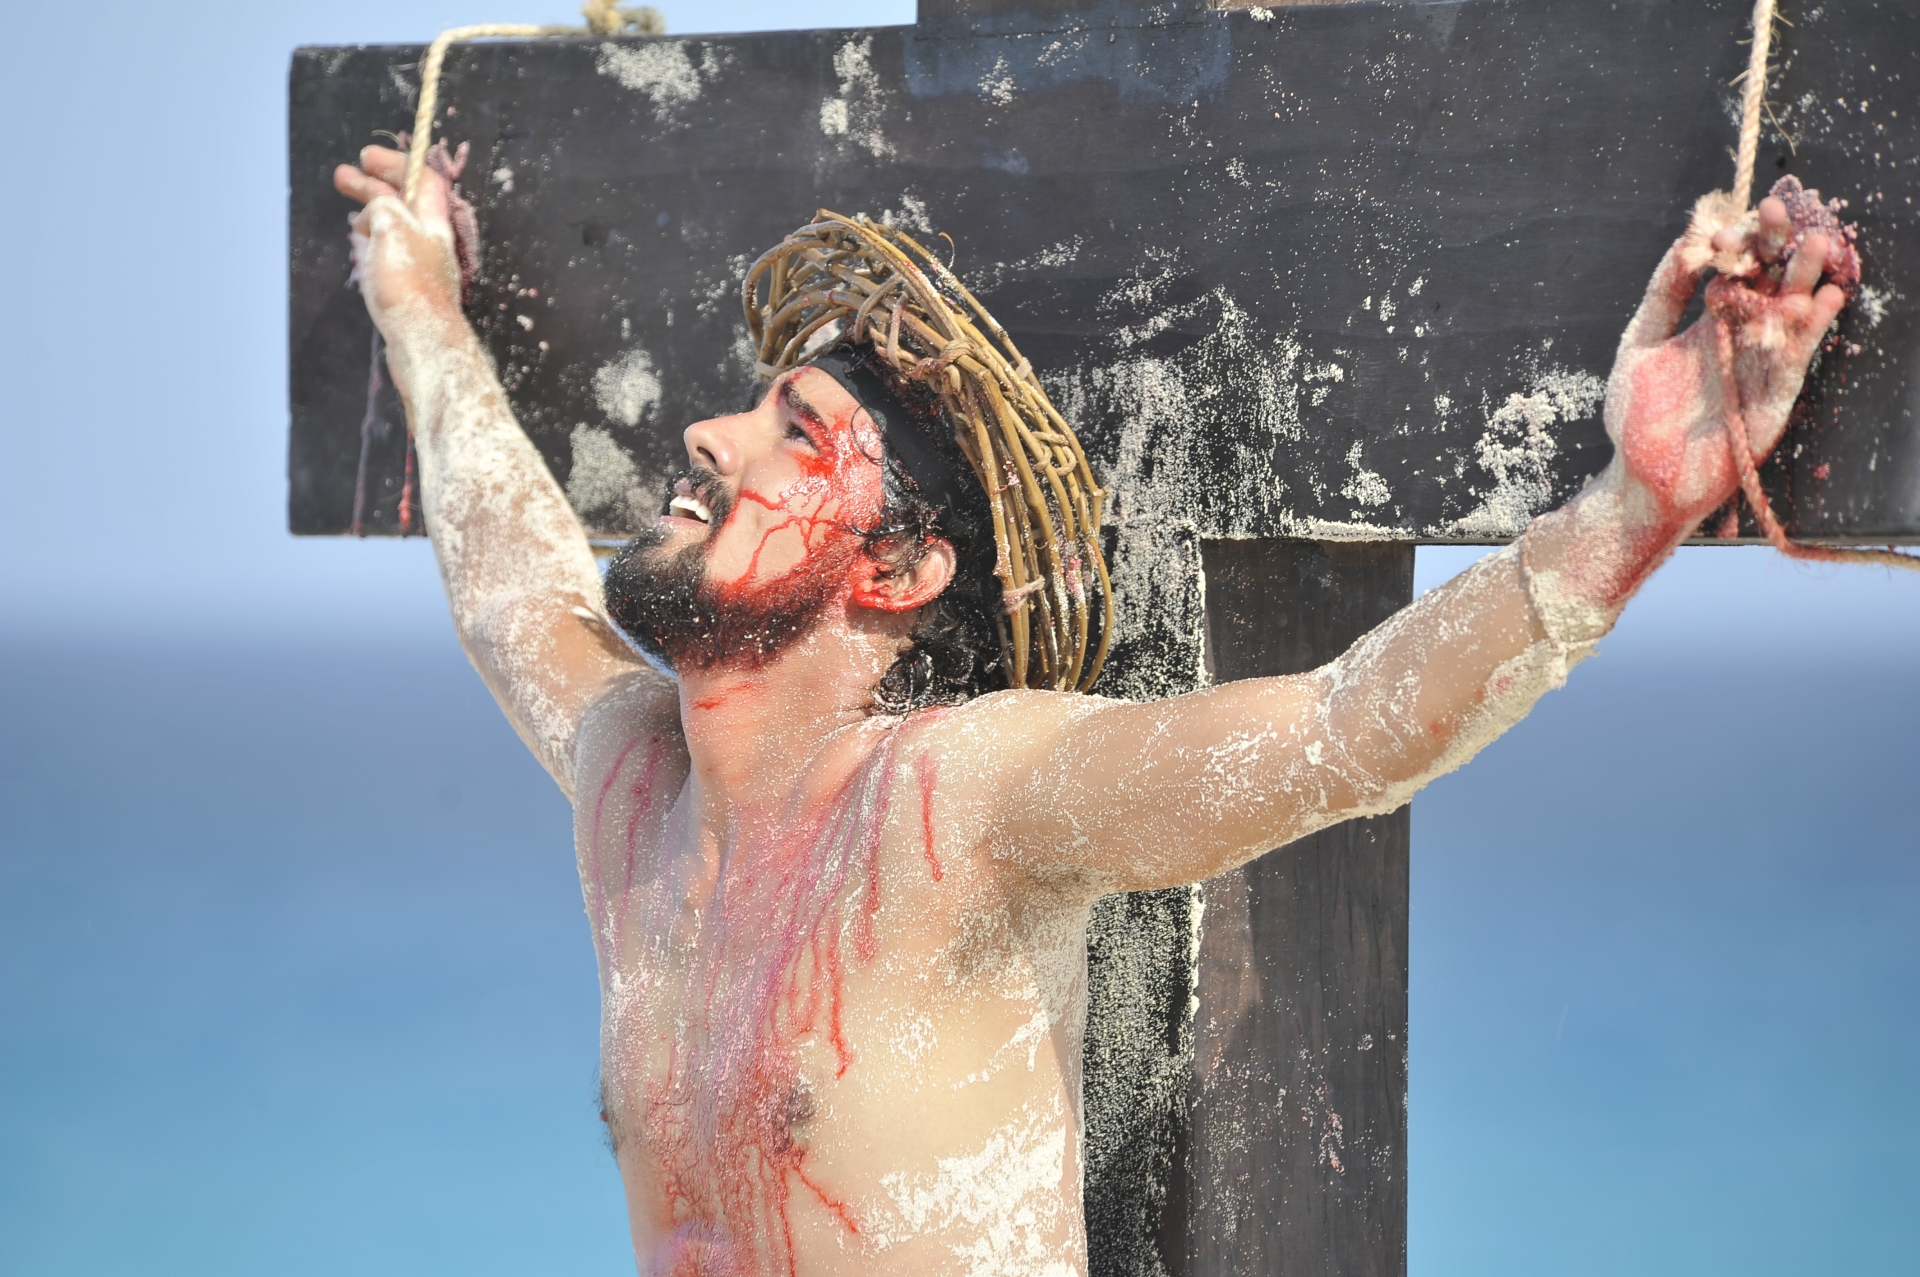 christ, beach, jesus, passion, cancun, way of the cross, crucifixion